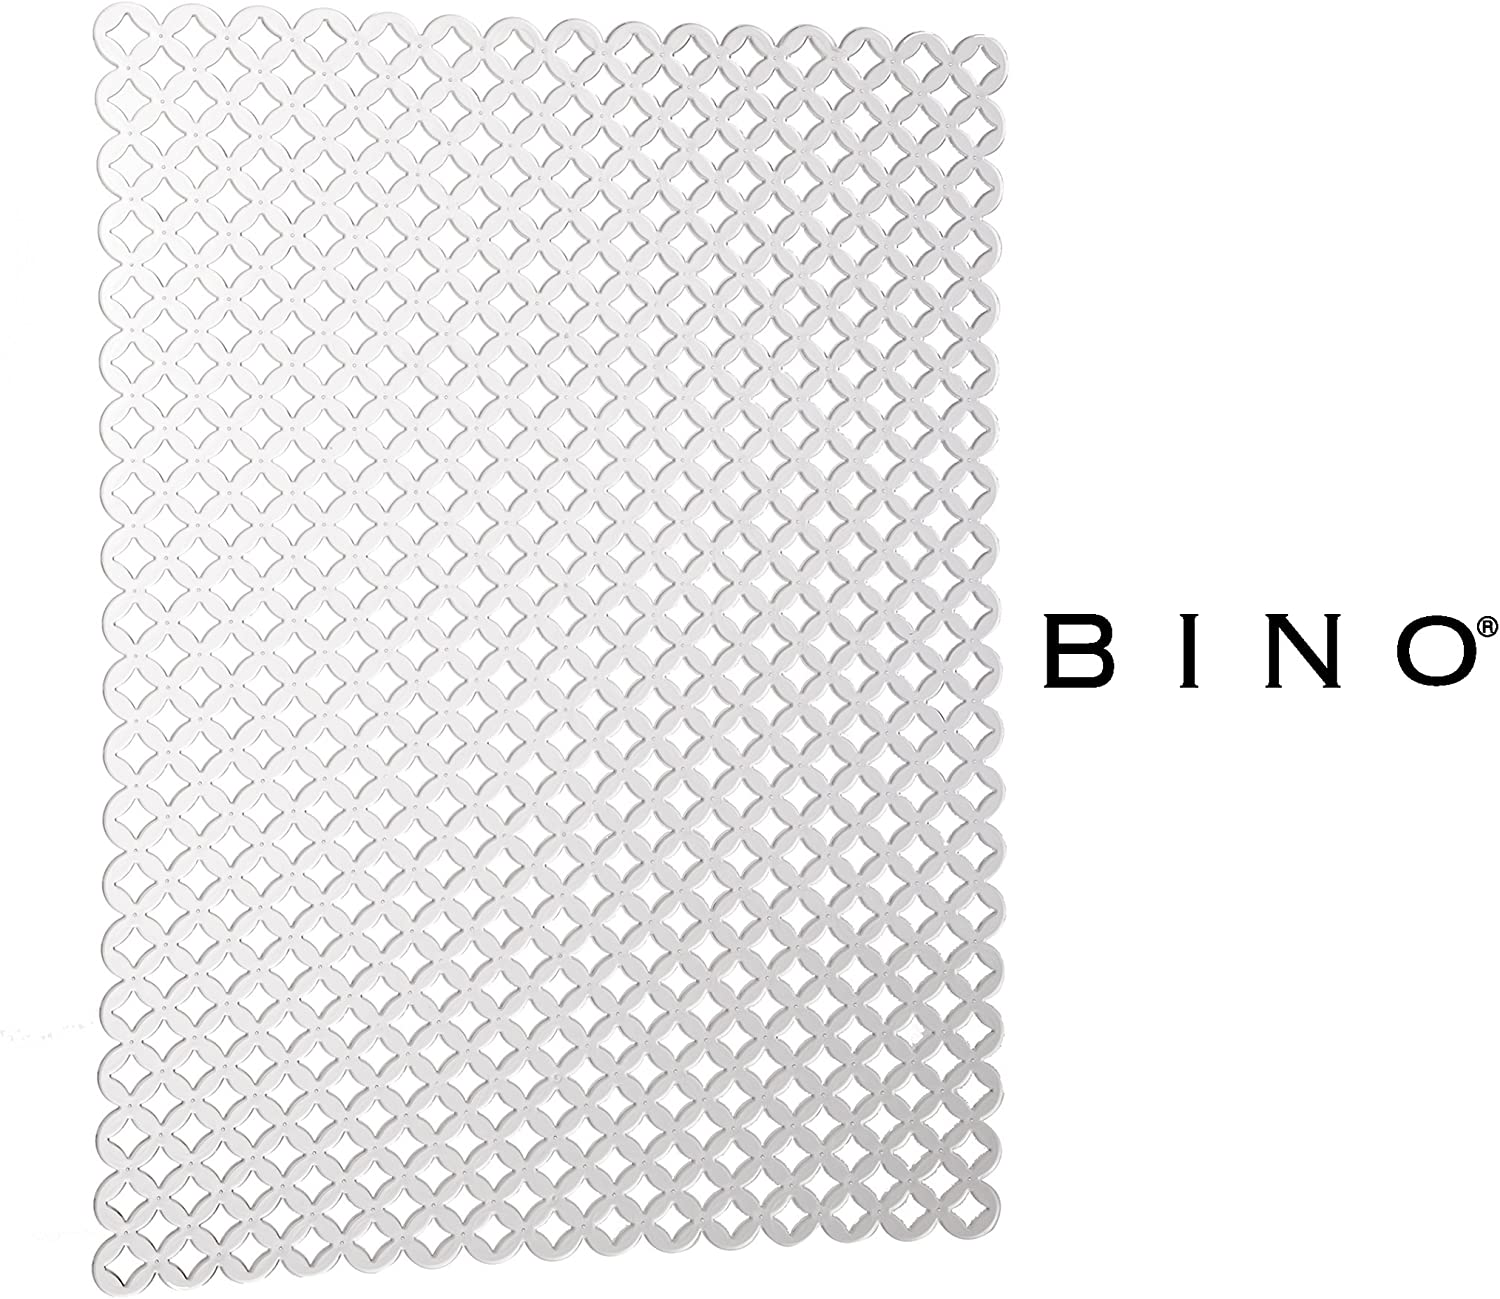 Mold and Mildew Resistant Kitchen Sink Mat with Quick Draining Design Kitchen Sink Mats For Stainless Steel Sink BINO Anti-Bacterial Kitchen Sink Protector Mat Clear Eco-Friendly